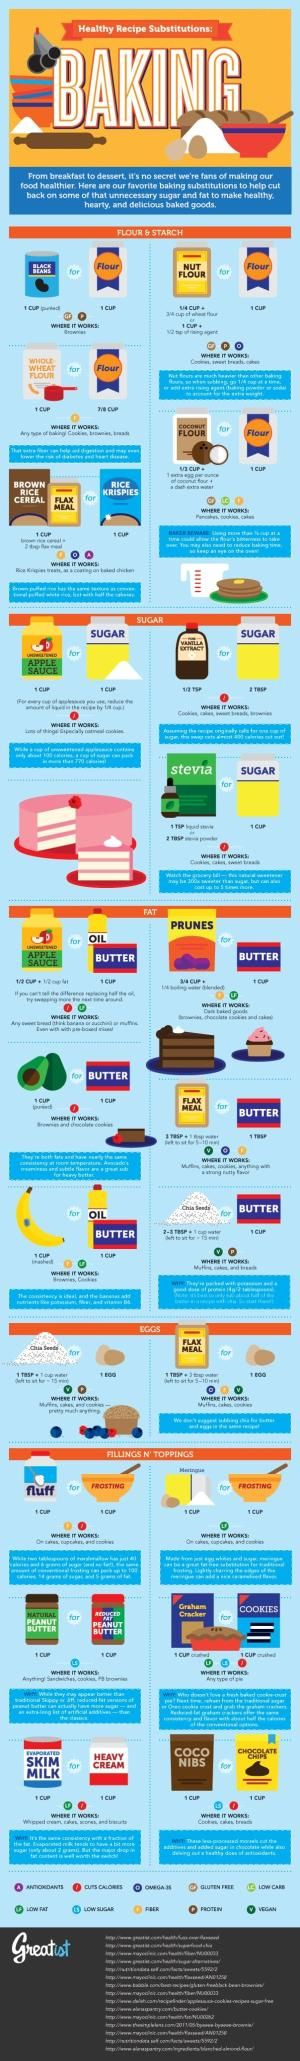 Baking Substitutes.  Oh, how I've longed for this! by mattie